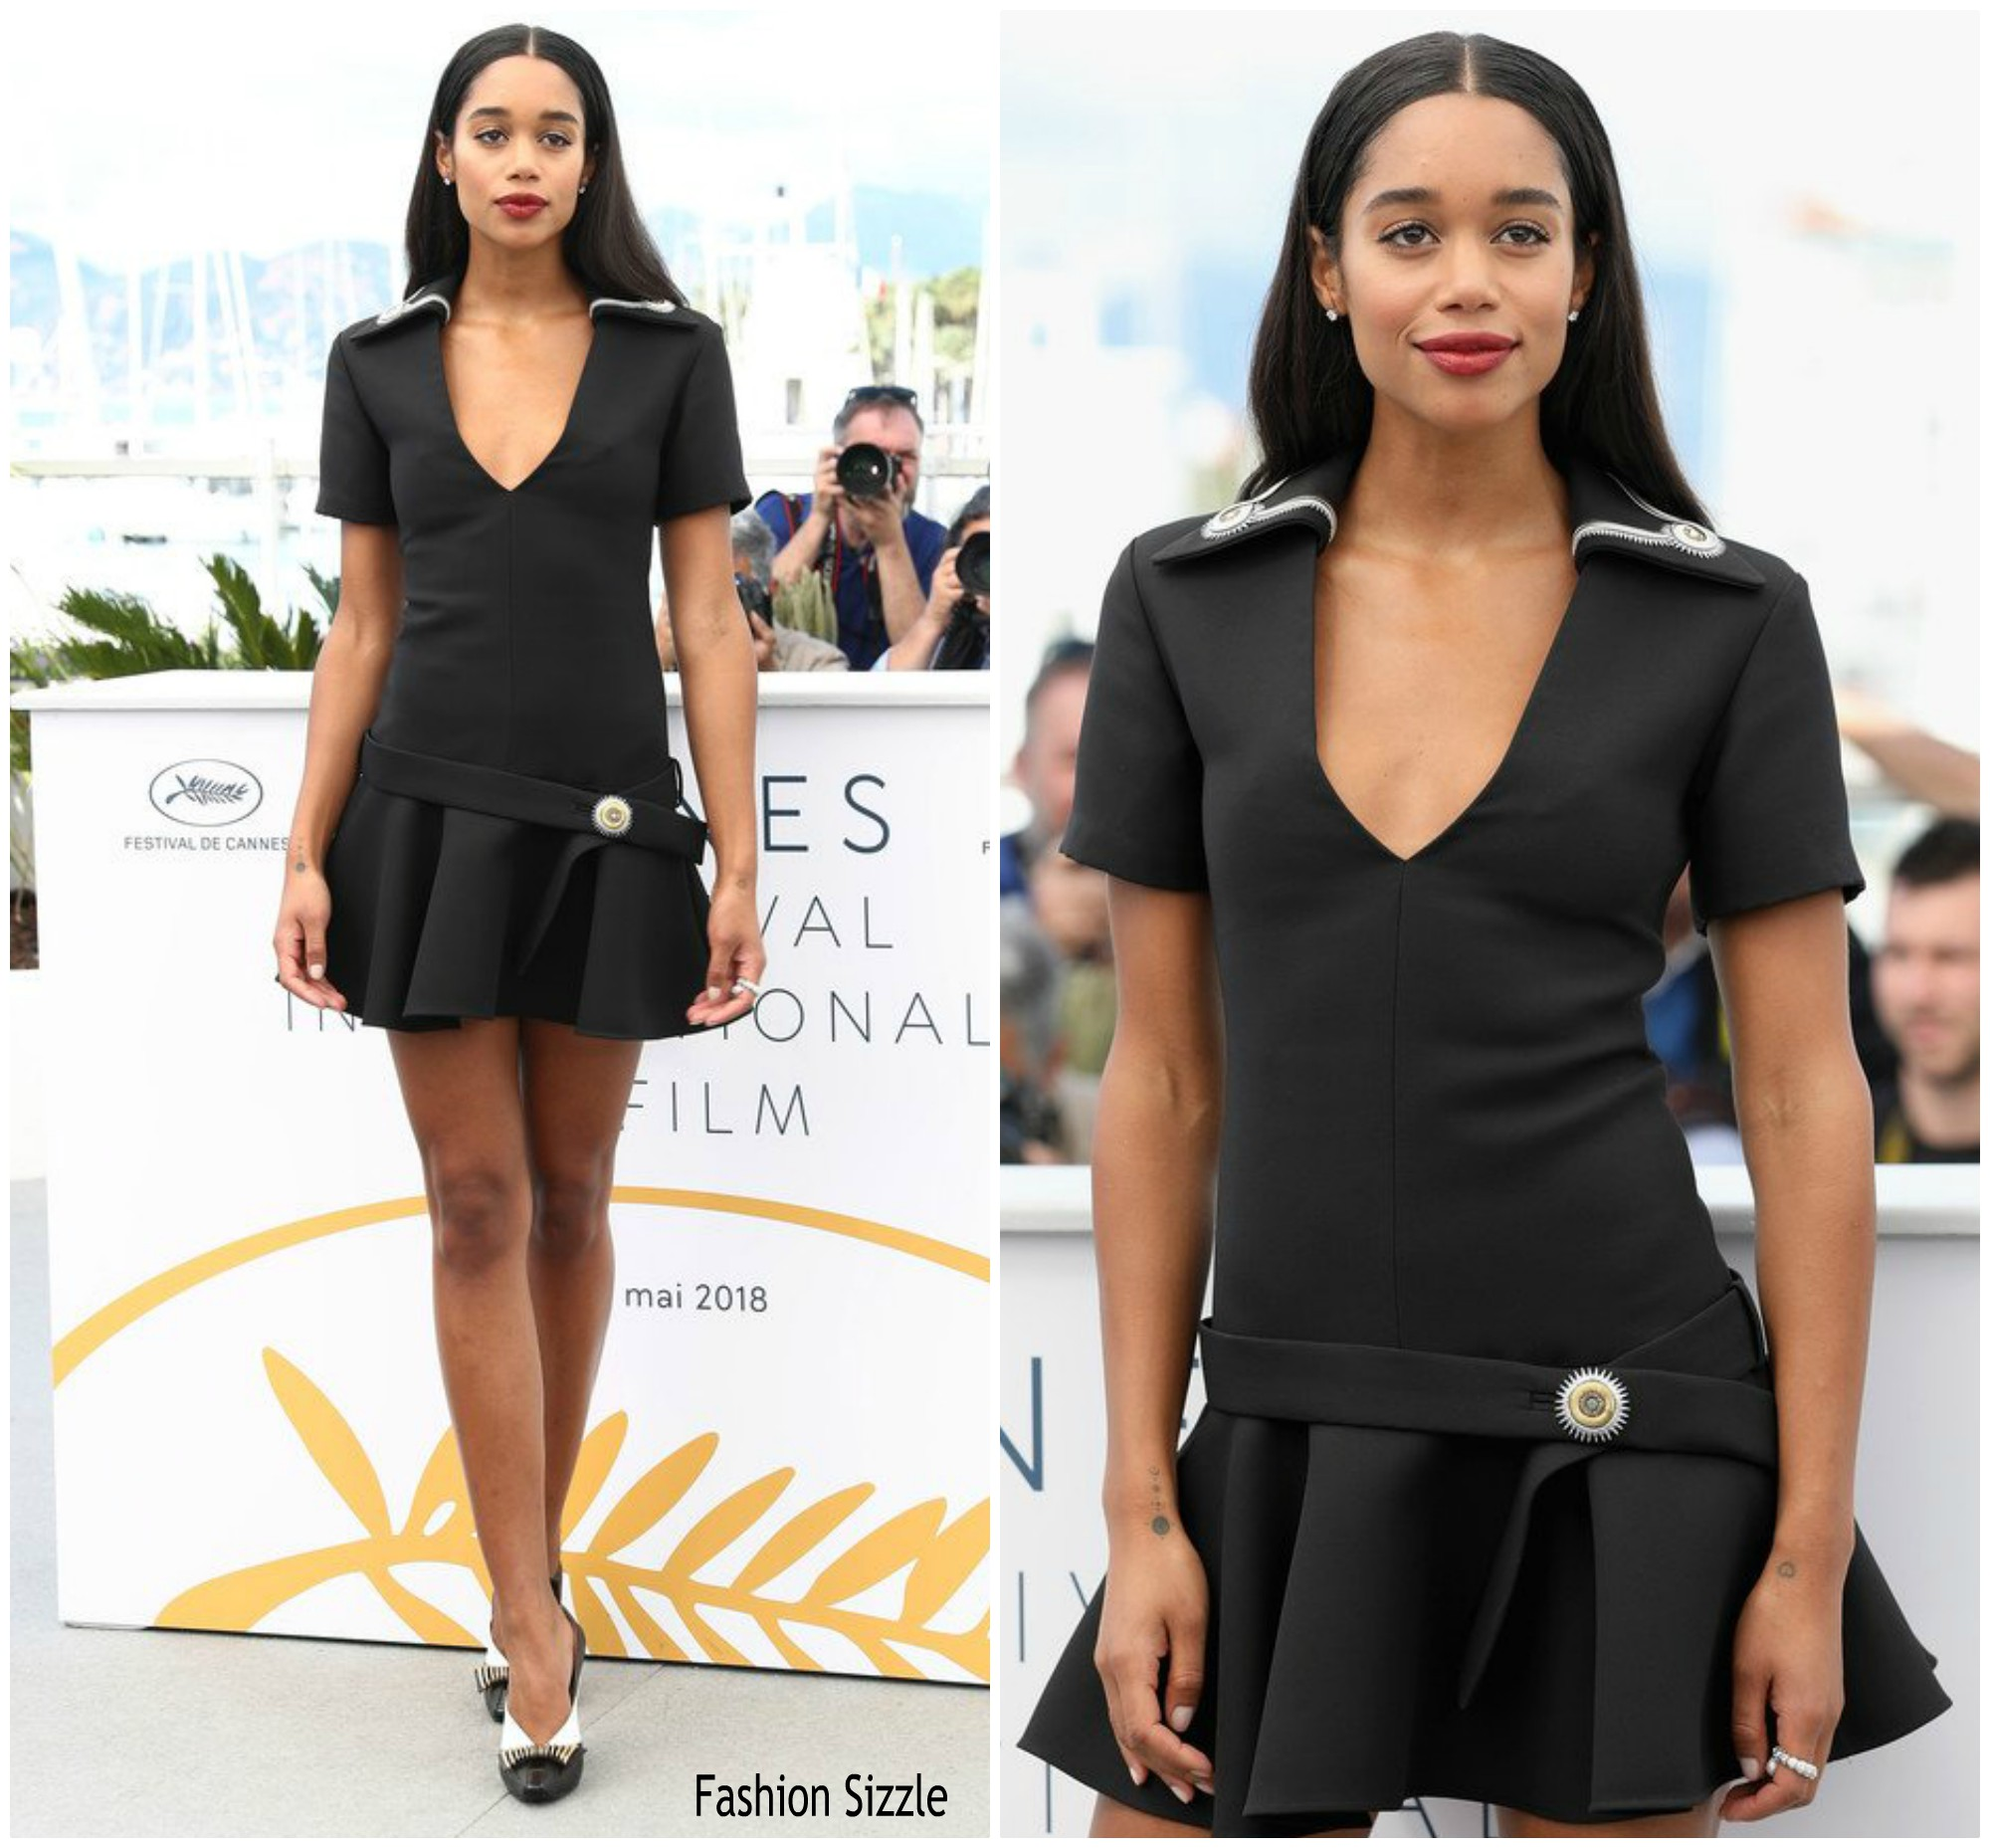 laura-harrier-in-louis-vuitton-blackkklansman-cannes-film-festival-photocall